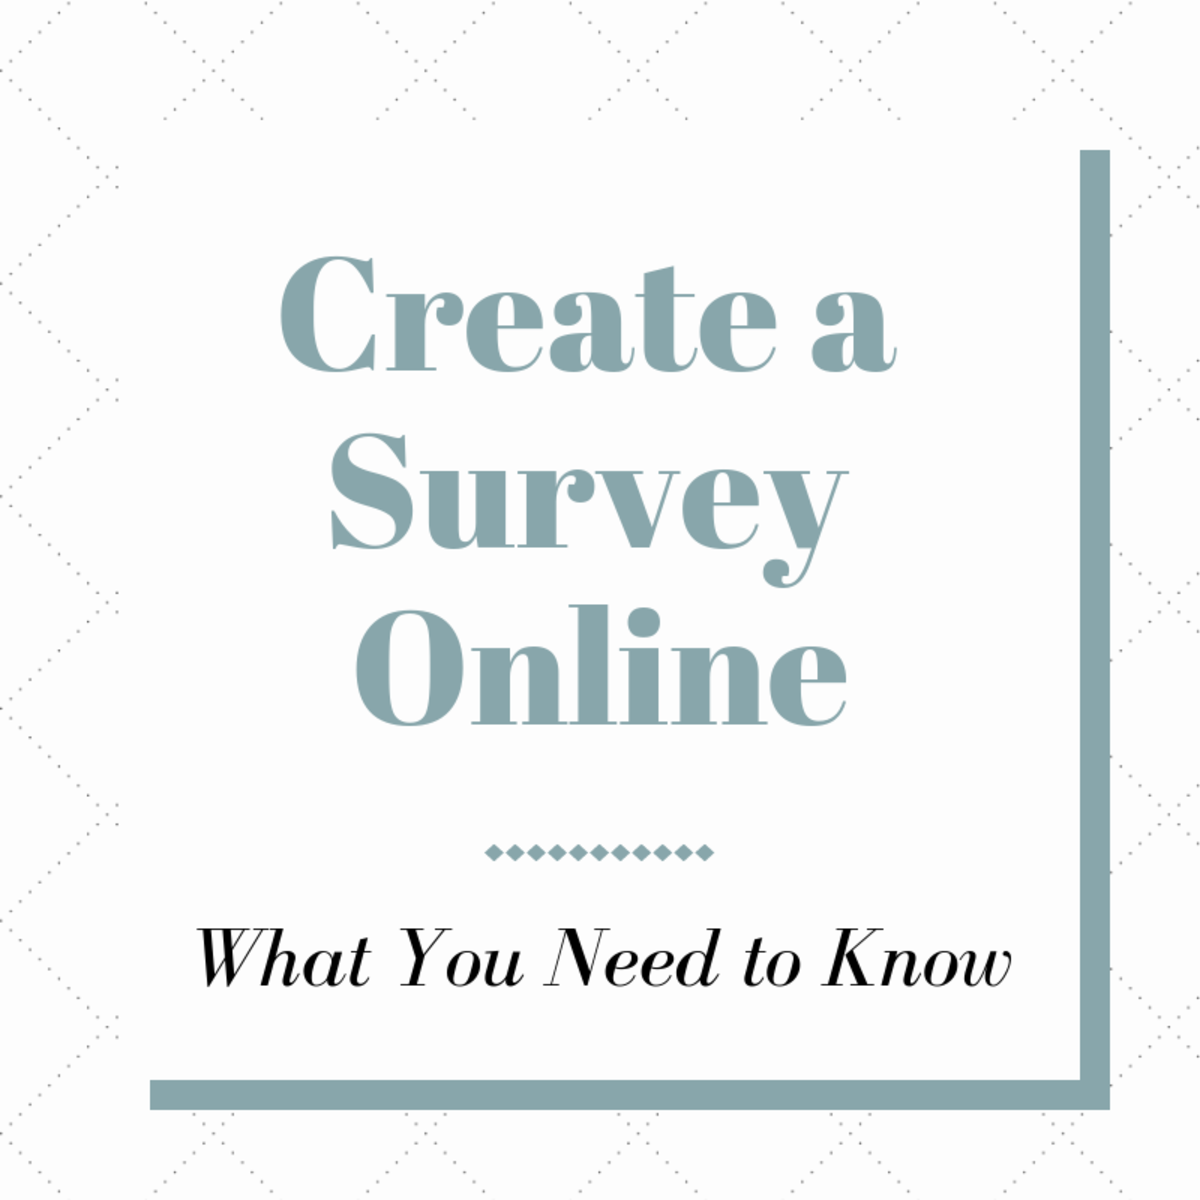 Create a Survey Online: What You Need to Know